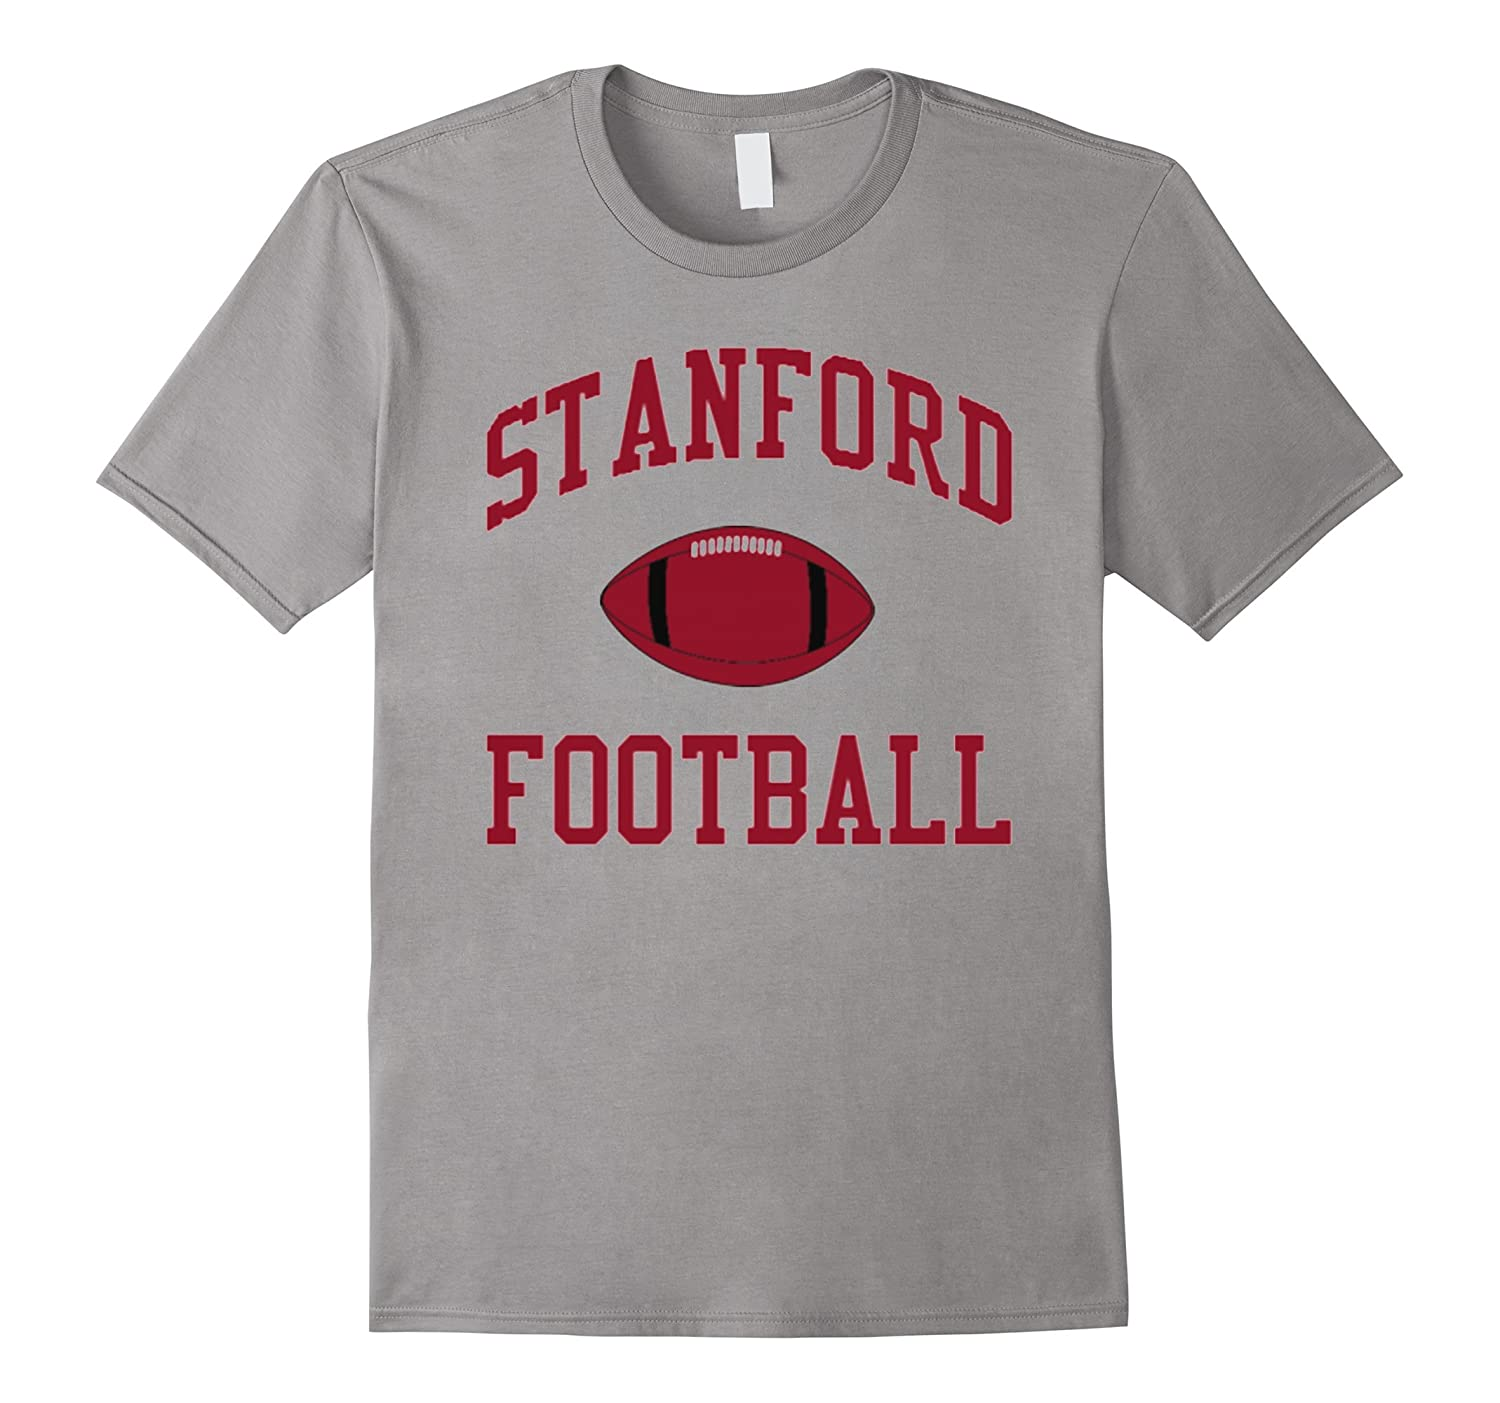 Stanford Football T-Shirt-BN